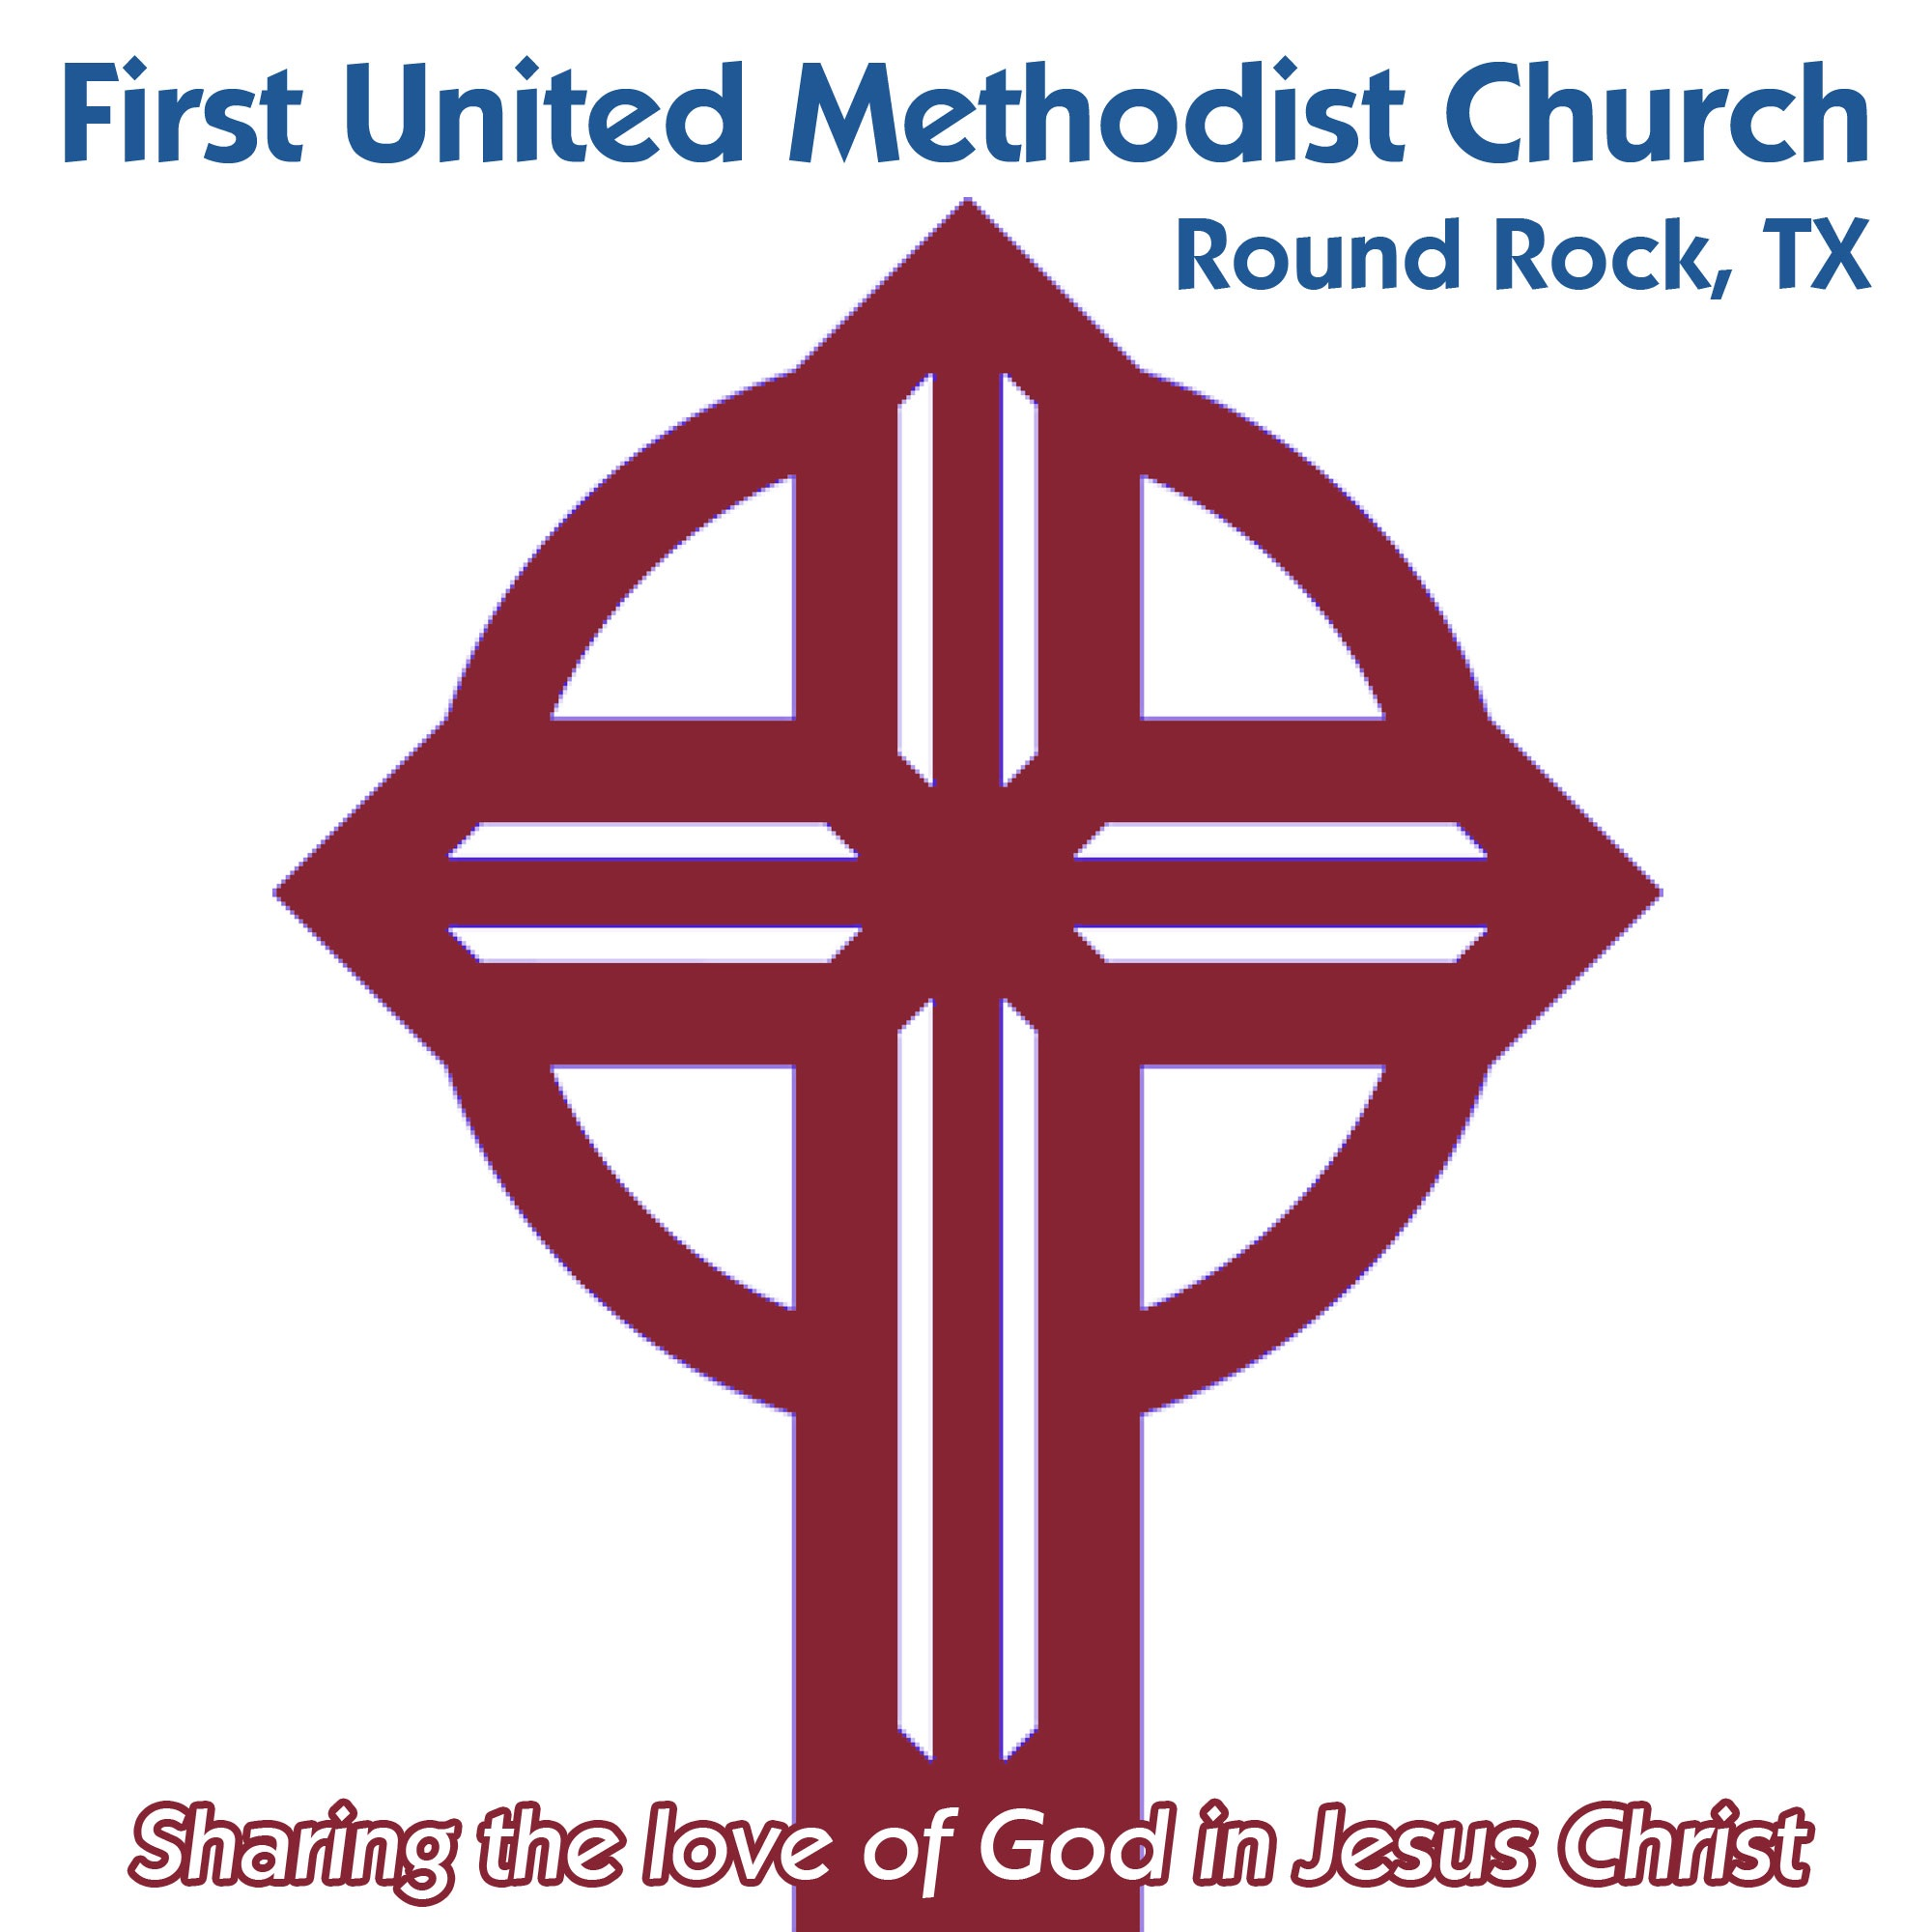 First United Methodist Church, Round Rock